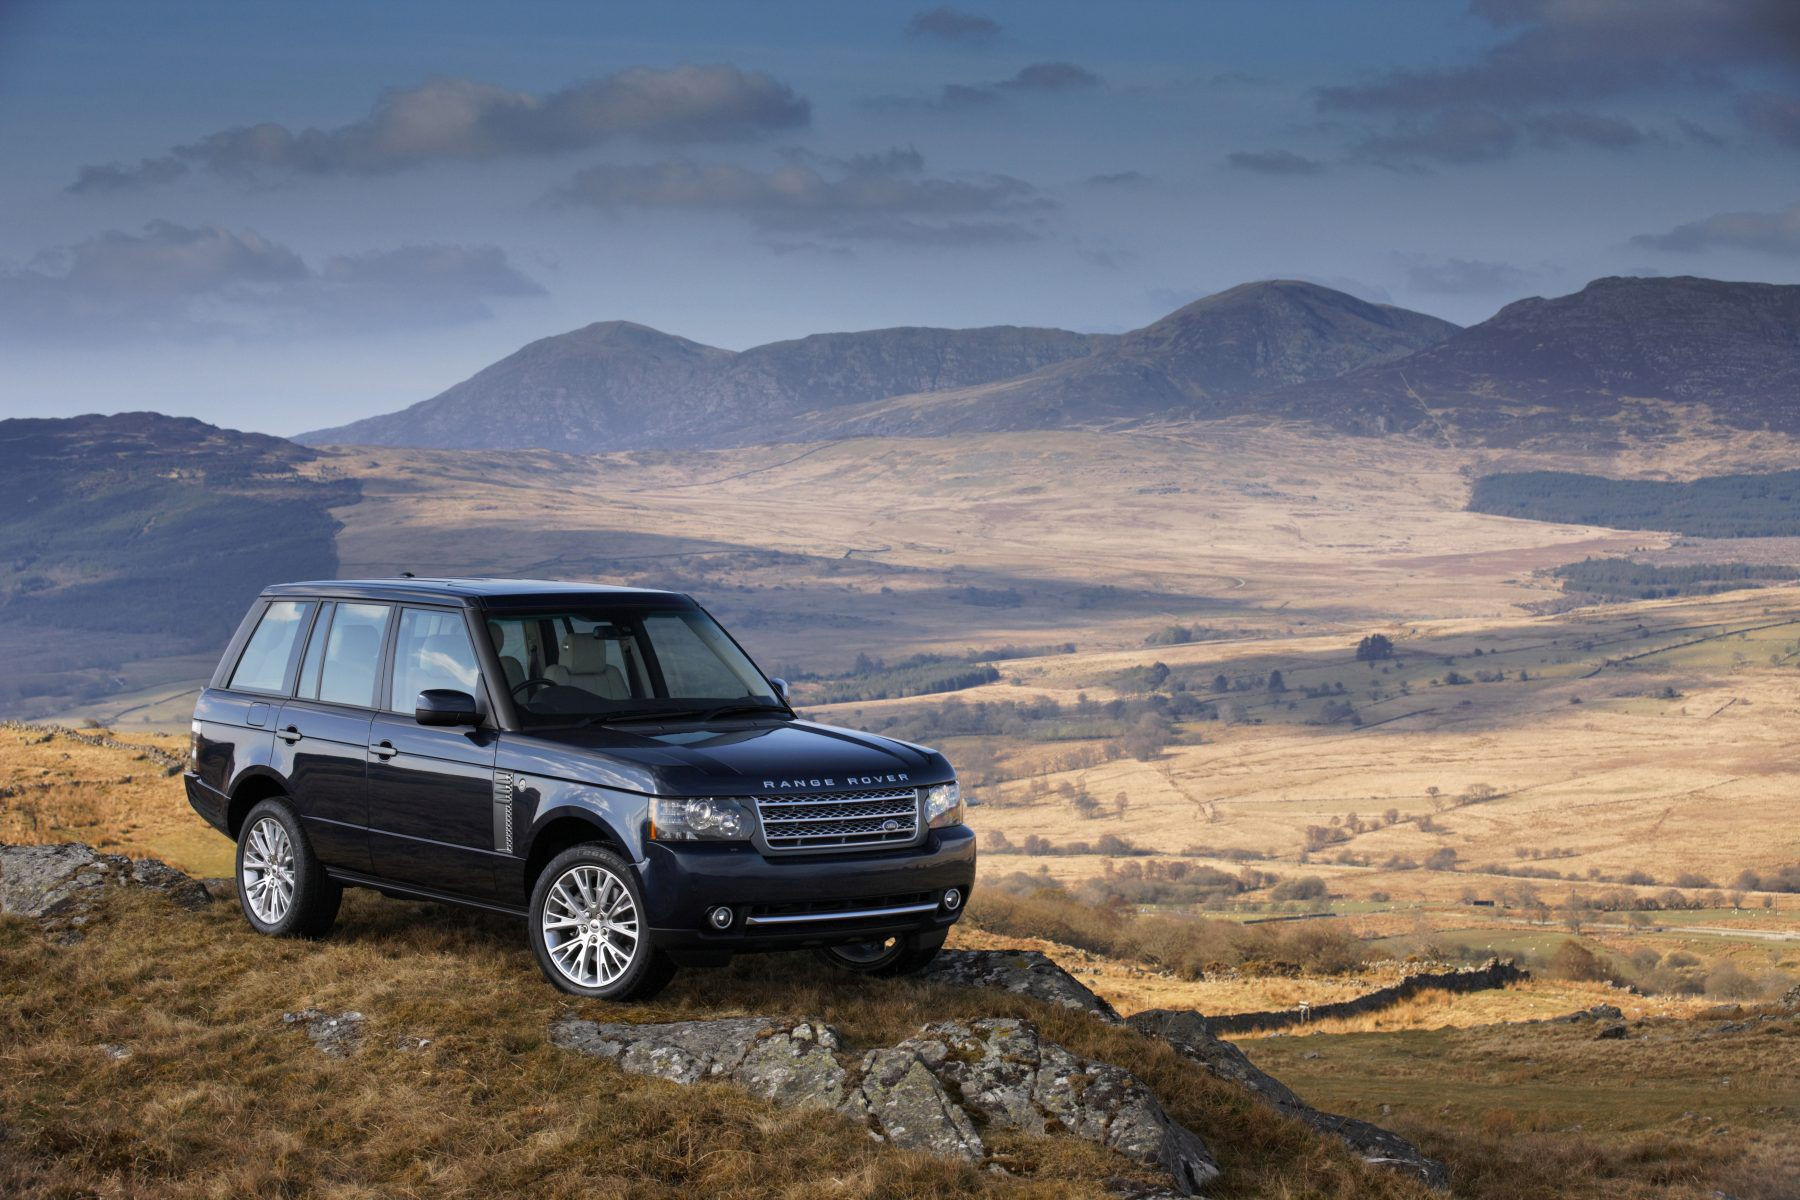 Black Range Rover on a hill